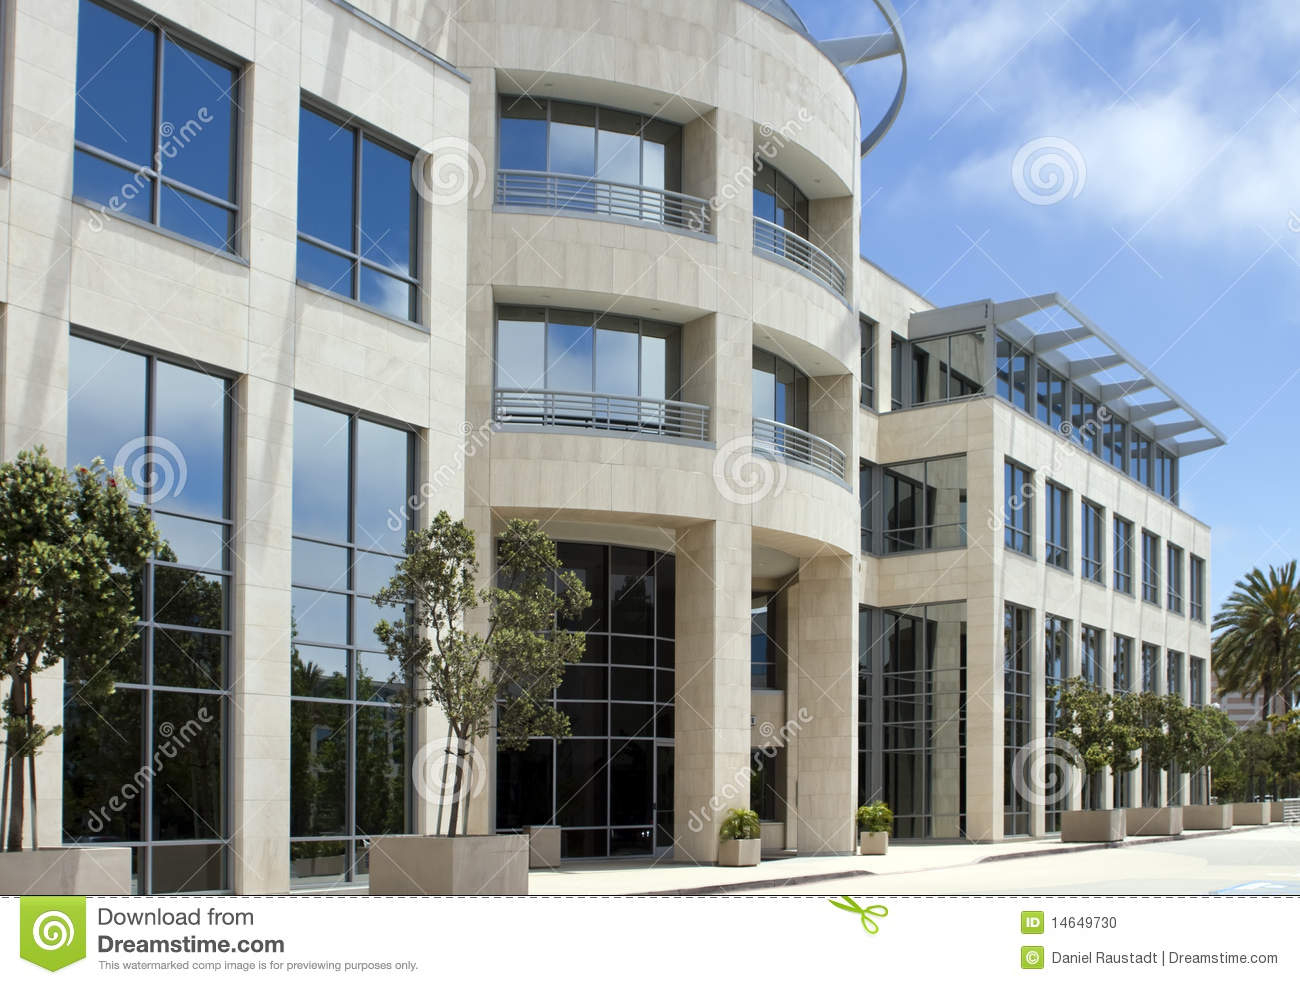 Bel immeuble de bureaux de corporation en californie photo for Immeuble bureau plan